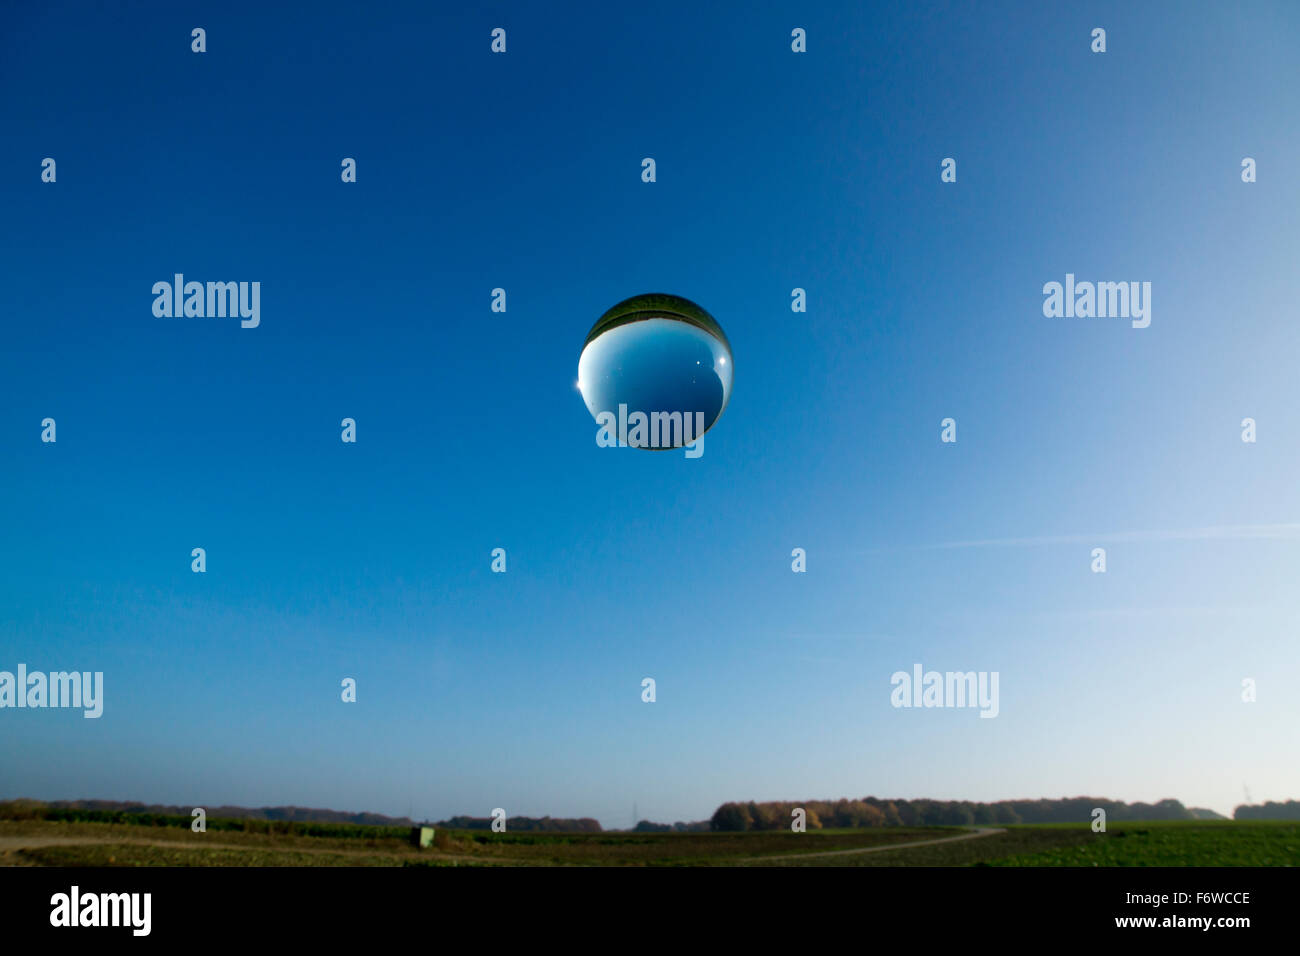 single crystal ball and bubbles in front of blue sky - Stock Image